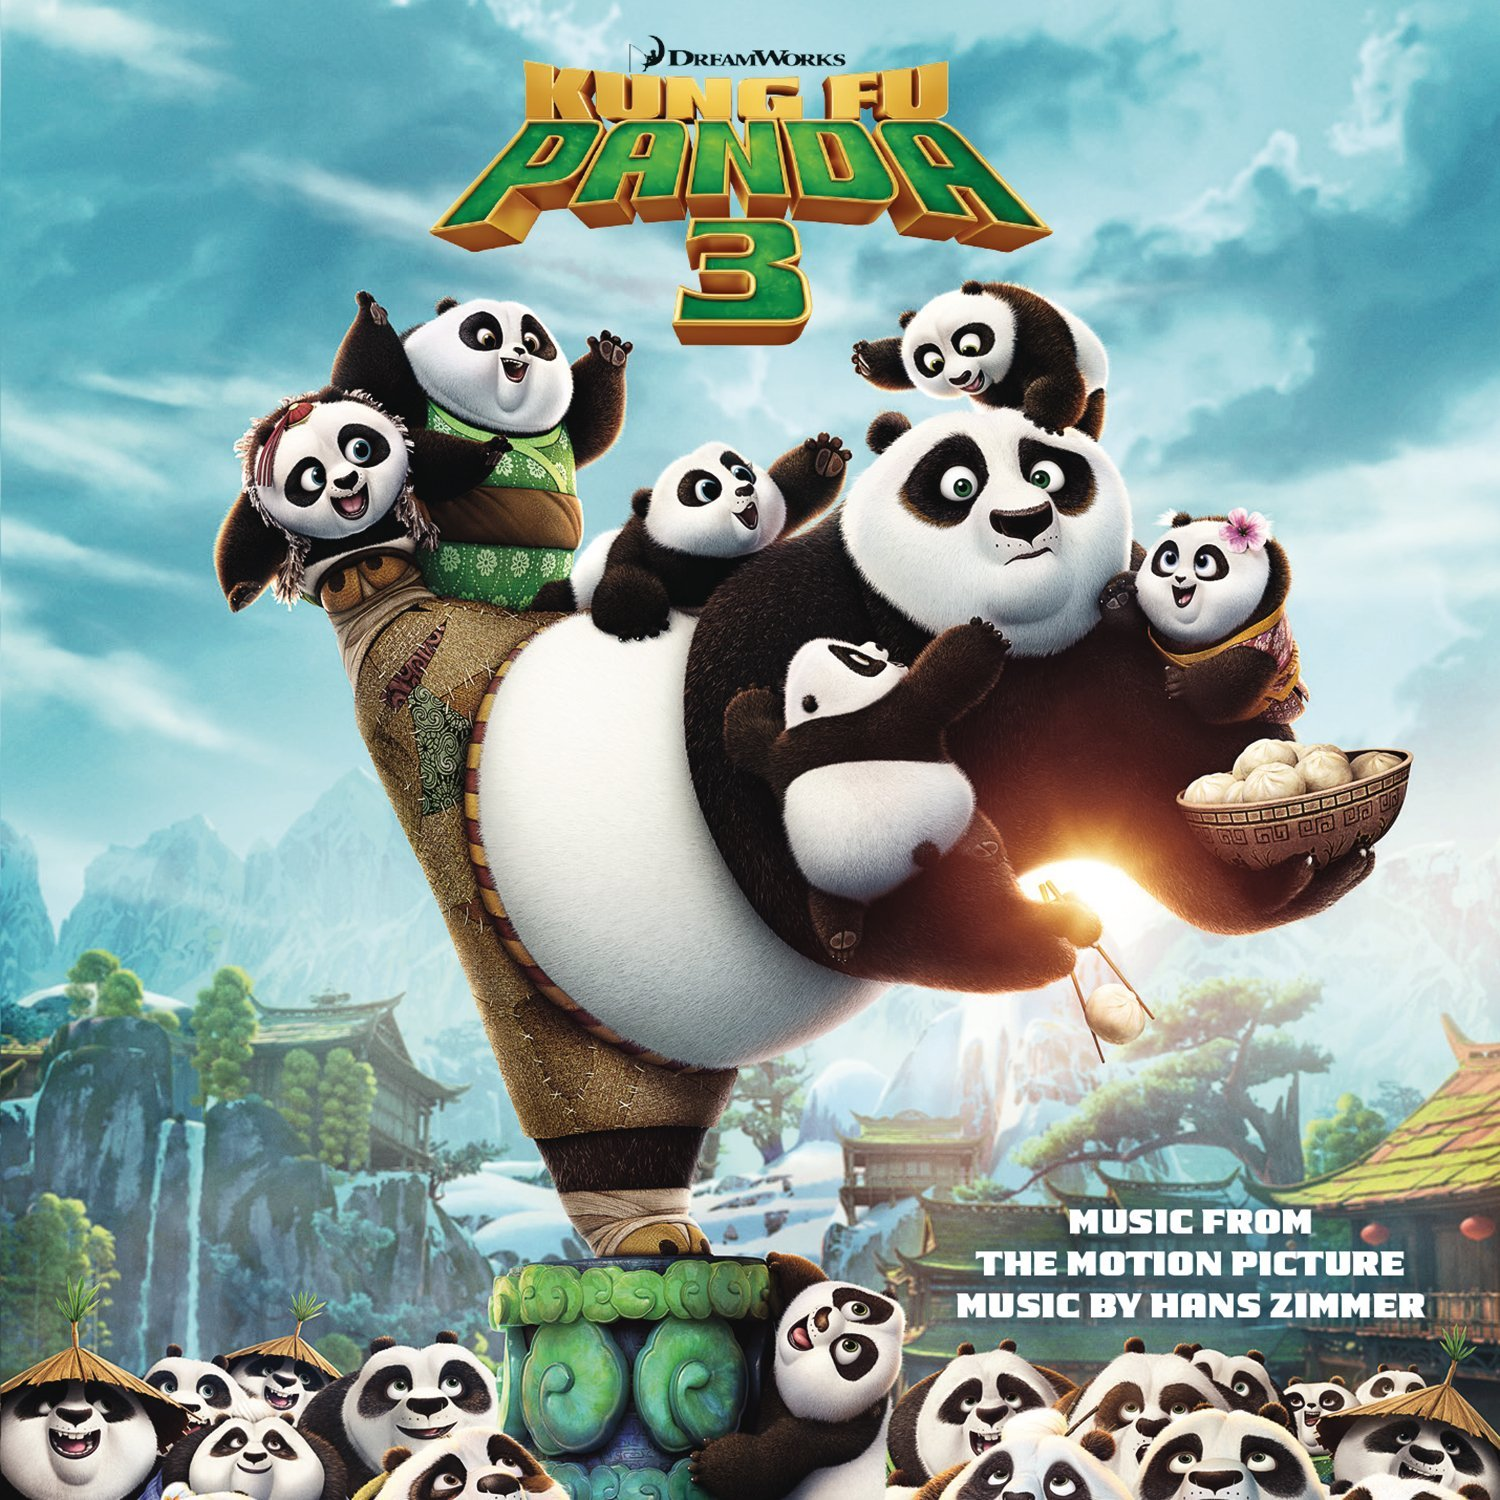 an overview of dreamworks movie king fu panda 2 List of deaths in the dreamworks trilogy kung fu panda kung fu panda vachir - killed by tai lung  you are no match for our kung fu  gamer movie deadpool 2.